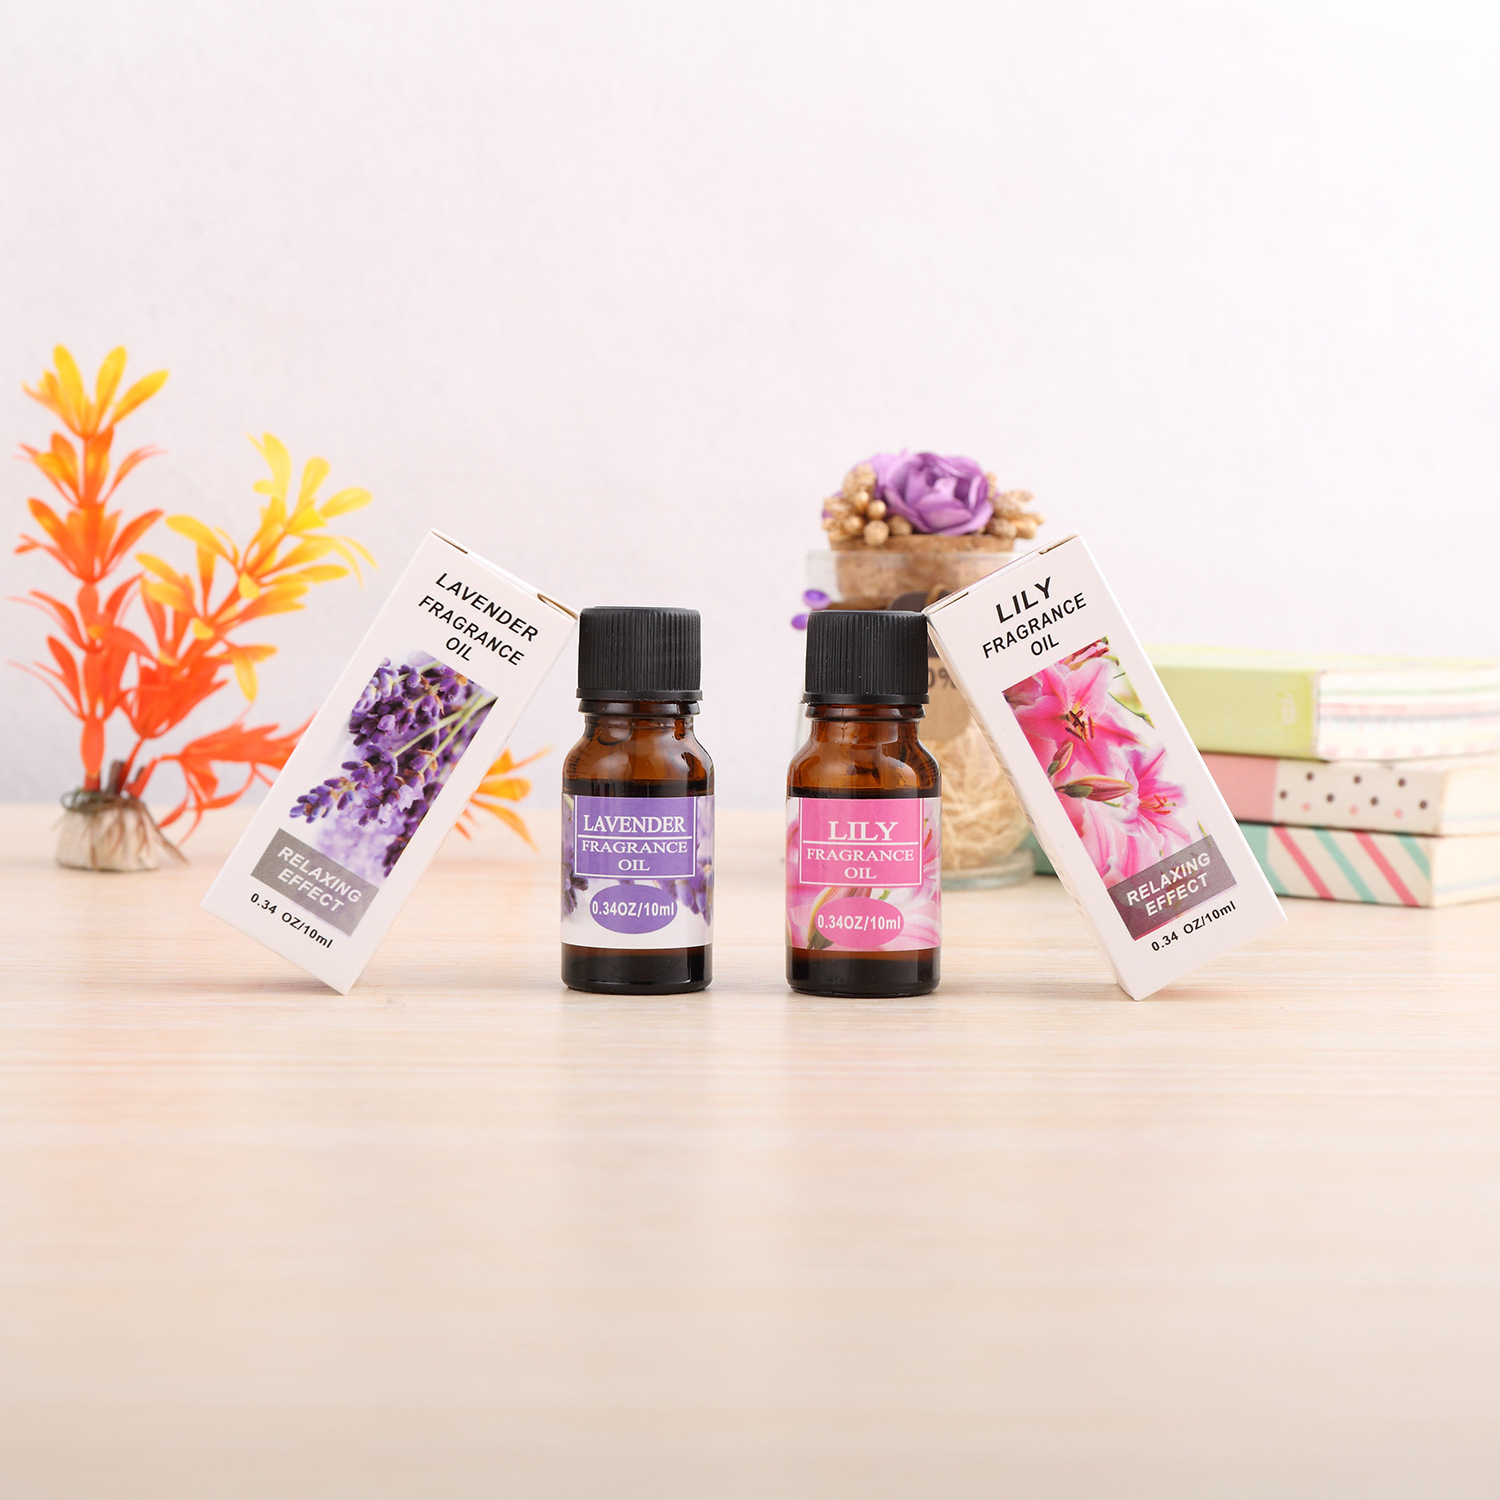 aromatherapy not all about the aroma 1 introductioni aromatherapy is frequently talked about as an the actual market as not all therapeutic use of essential oils is based on their aroma.